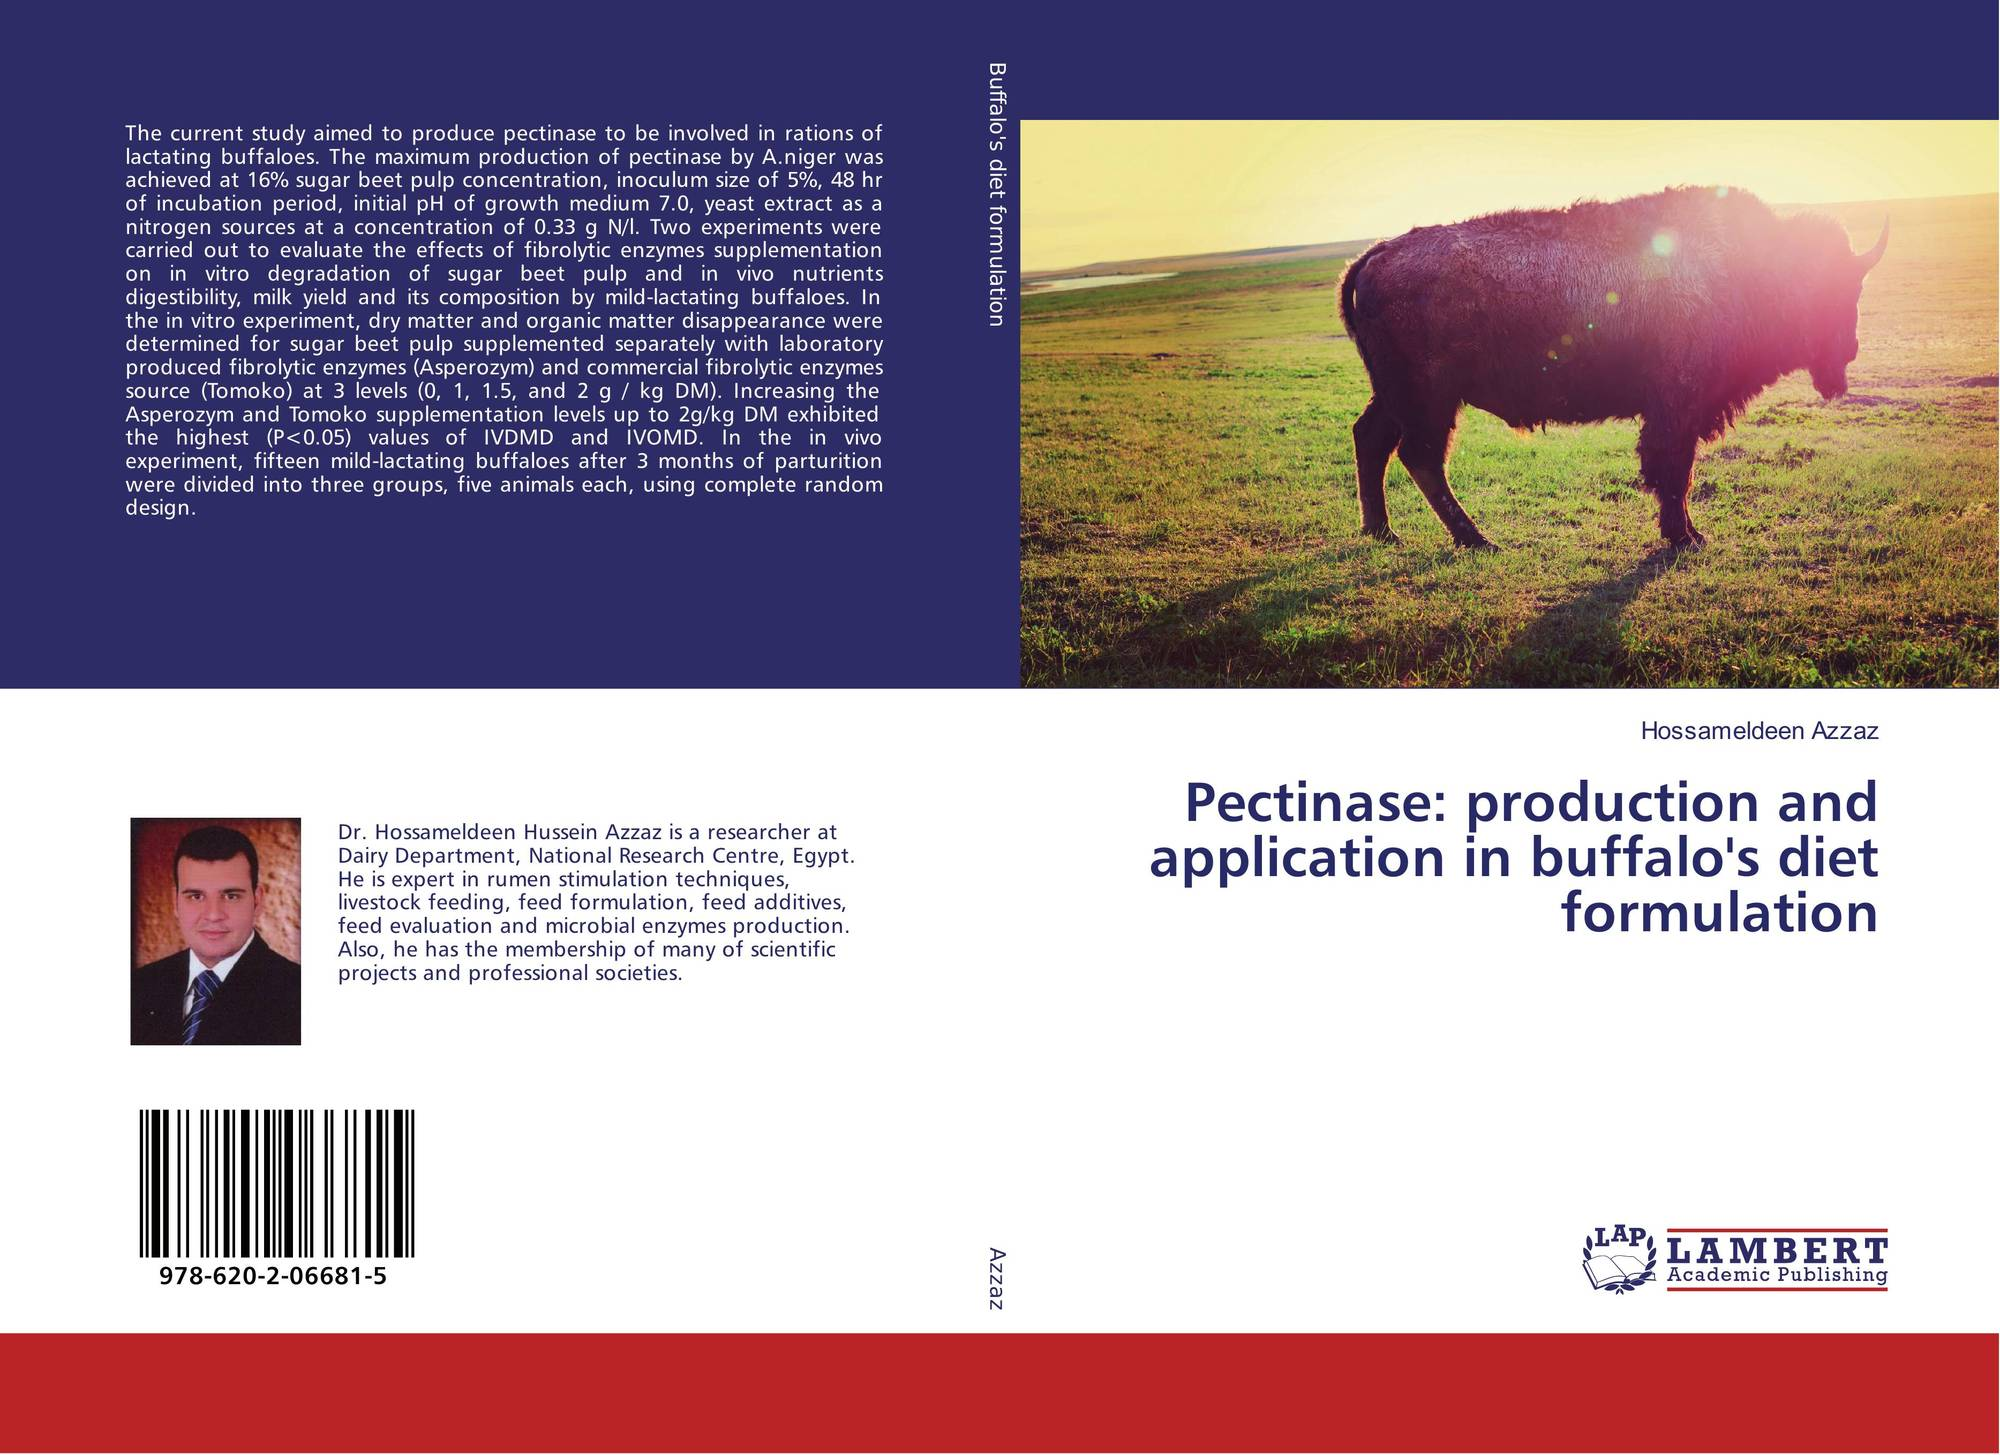 Pectinase: production and application in buffalo's diet formulation